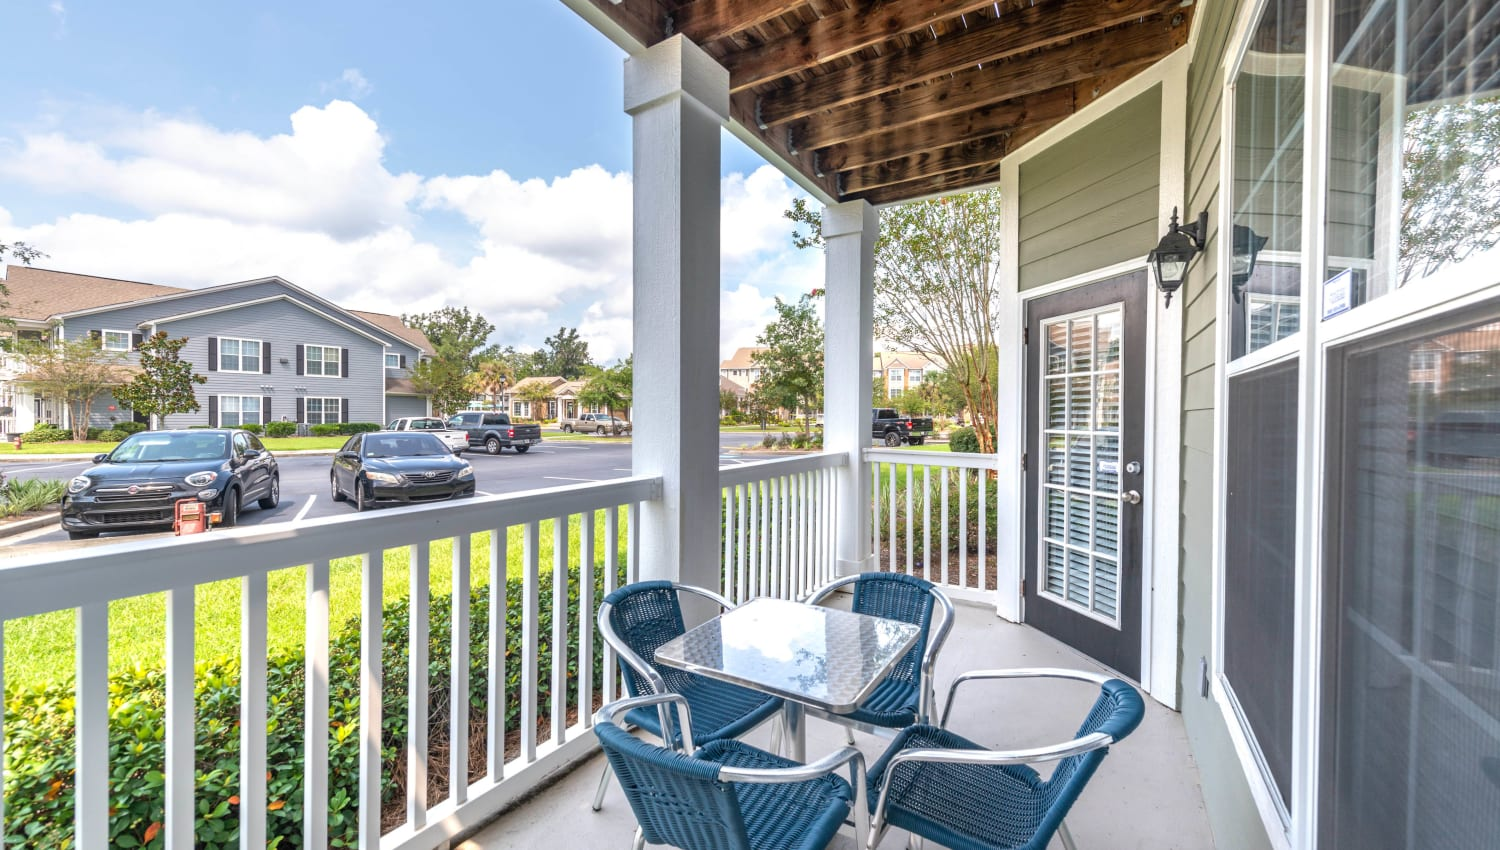 Large private balcony outside a model home at Olympus Fenwick in Savannah, Georgia